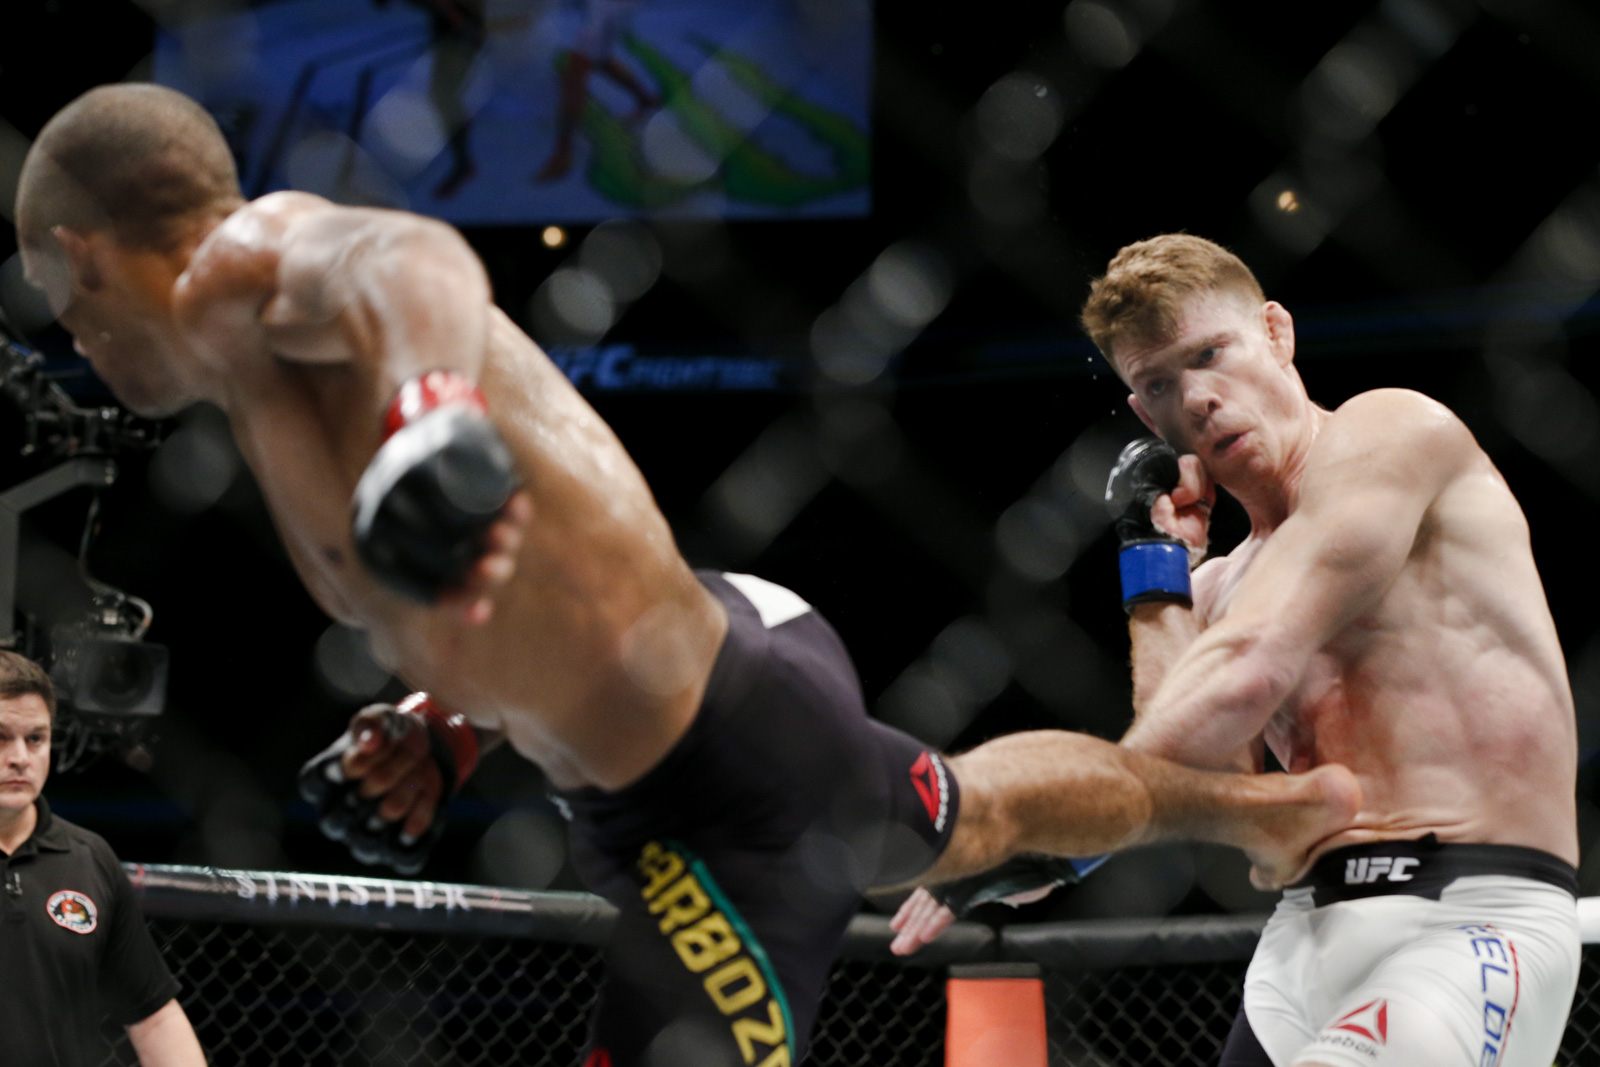 UFC on FOX 16 photos